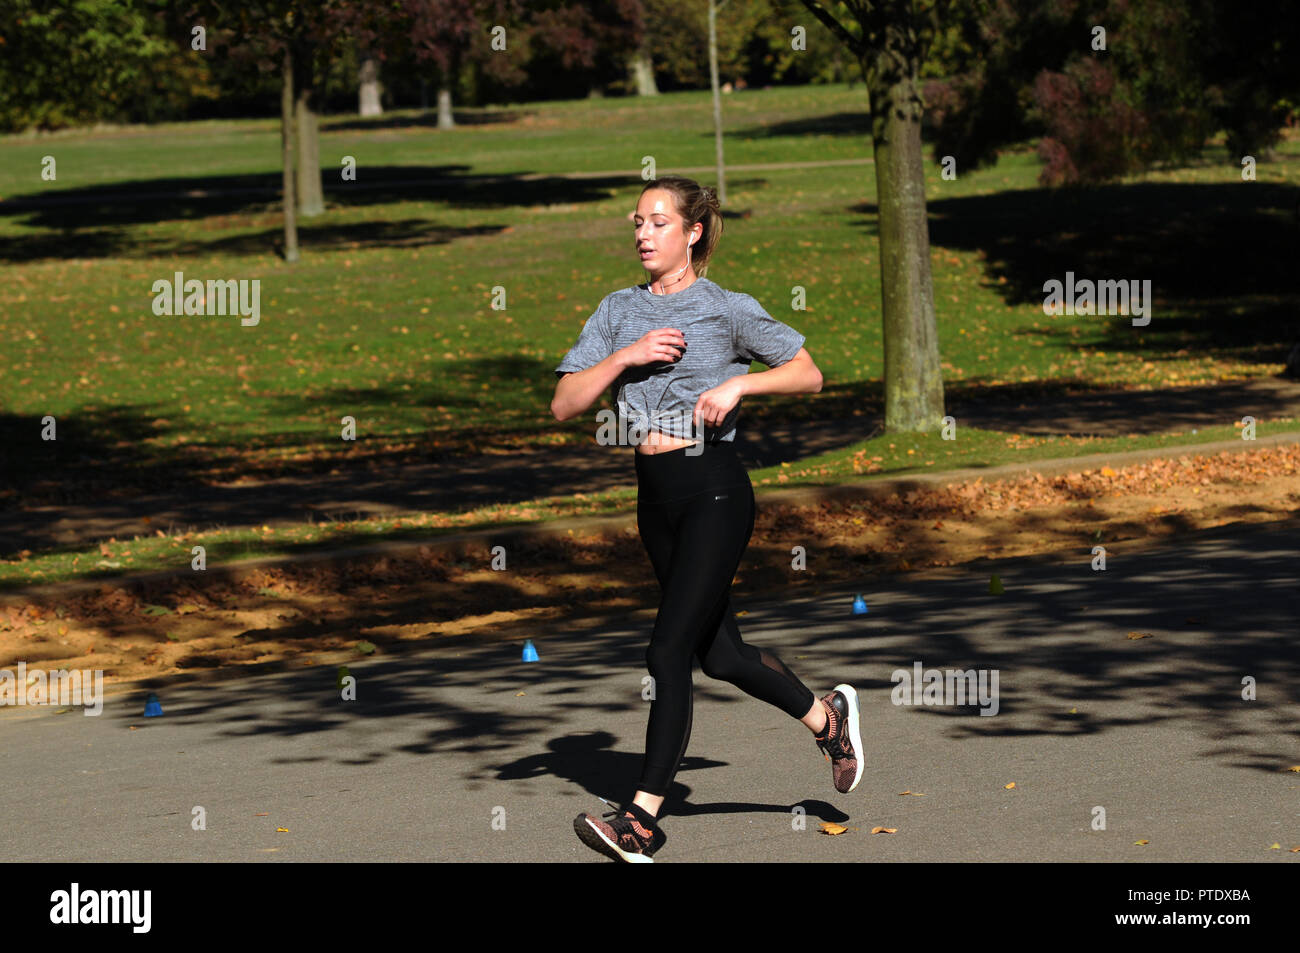 London, UK, 9th Oct 2018. Sunny day in Hyde Park midweek in October Credit: JOHNNY ARMSTEAD/Alamy Live News Stock Photo